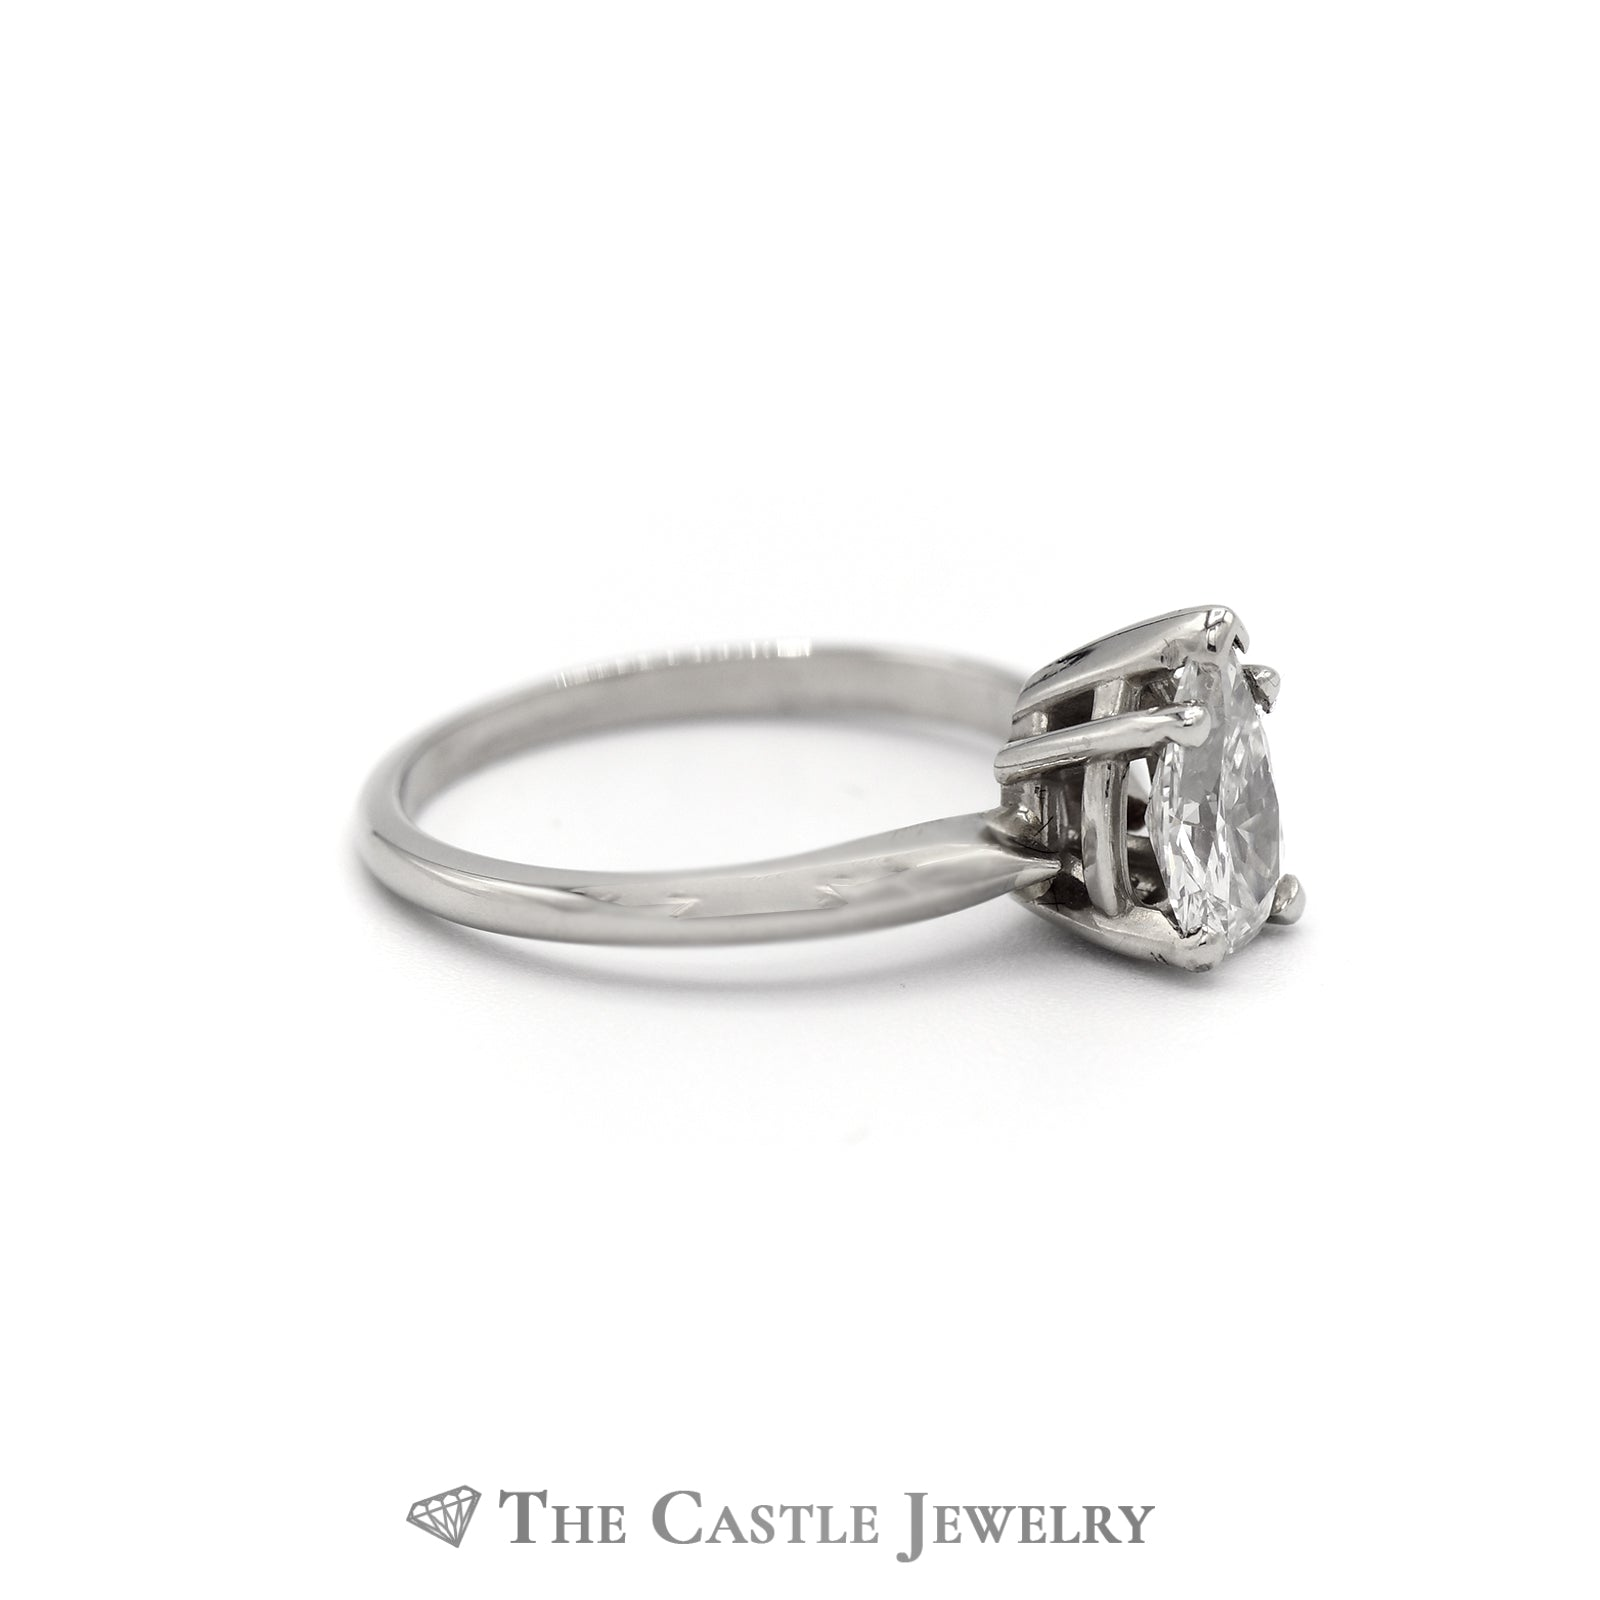 Pear Cut Diamond Solitaire Engagement Ring in 14K White Gold-2